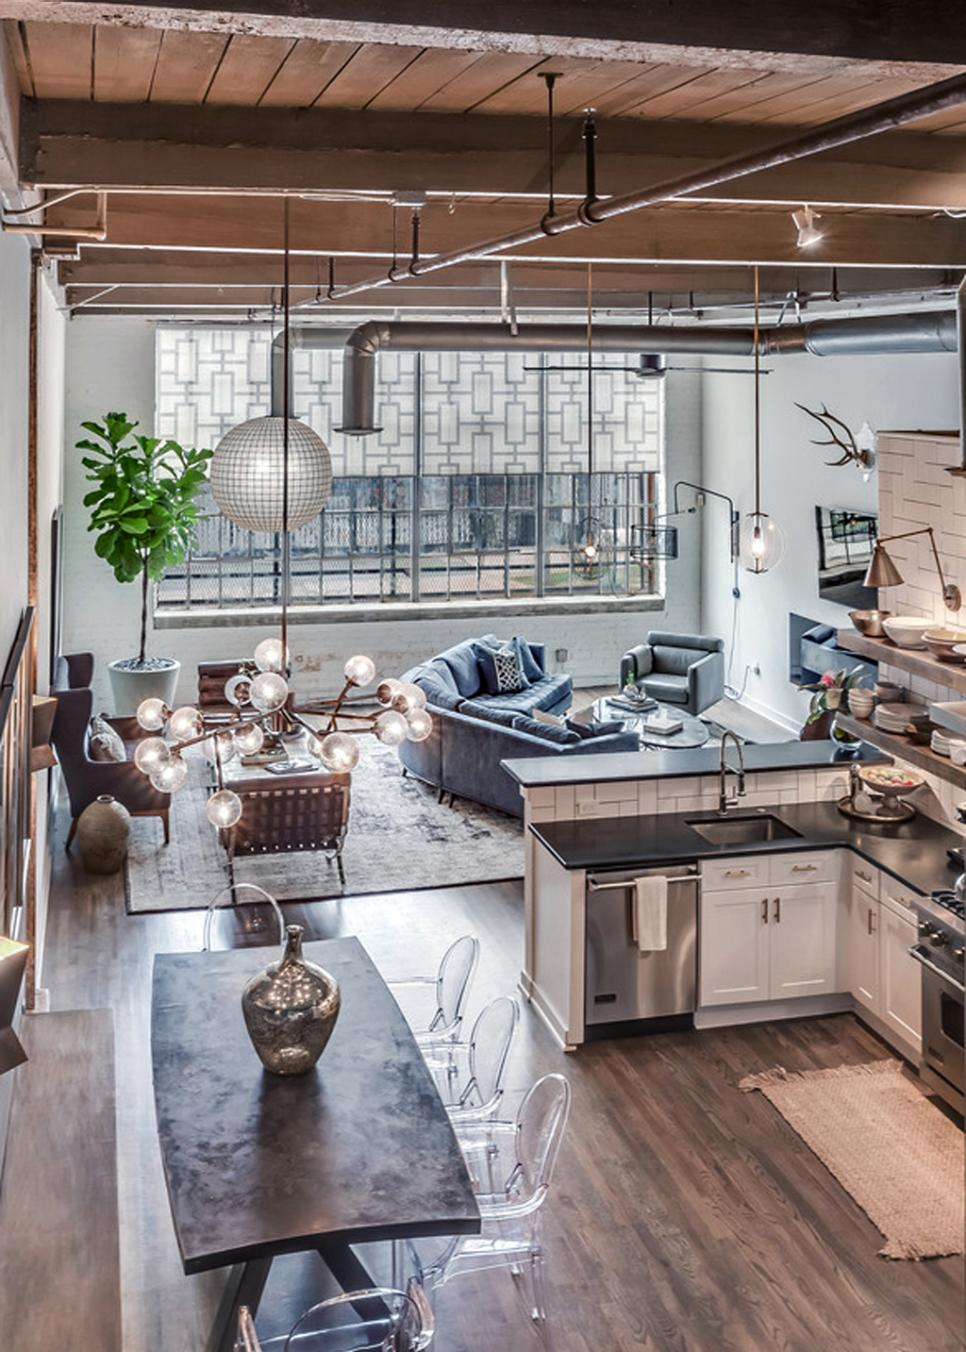 5 DesignSavvy Suggestions for Open Floor Plans Home Swee